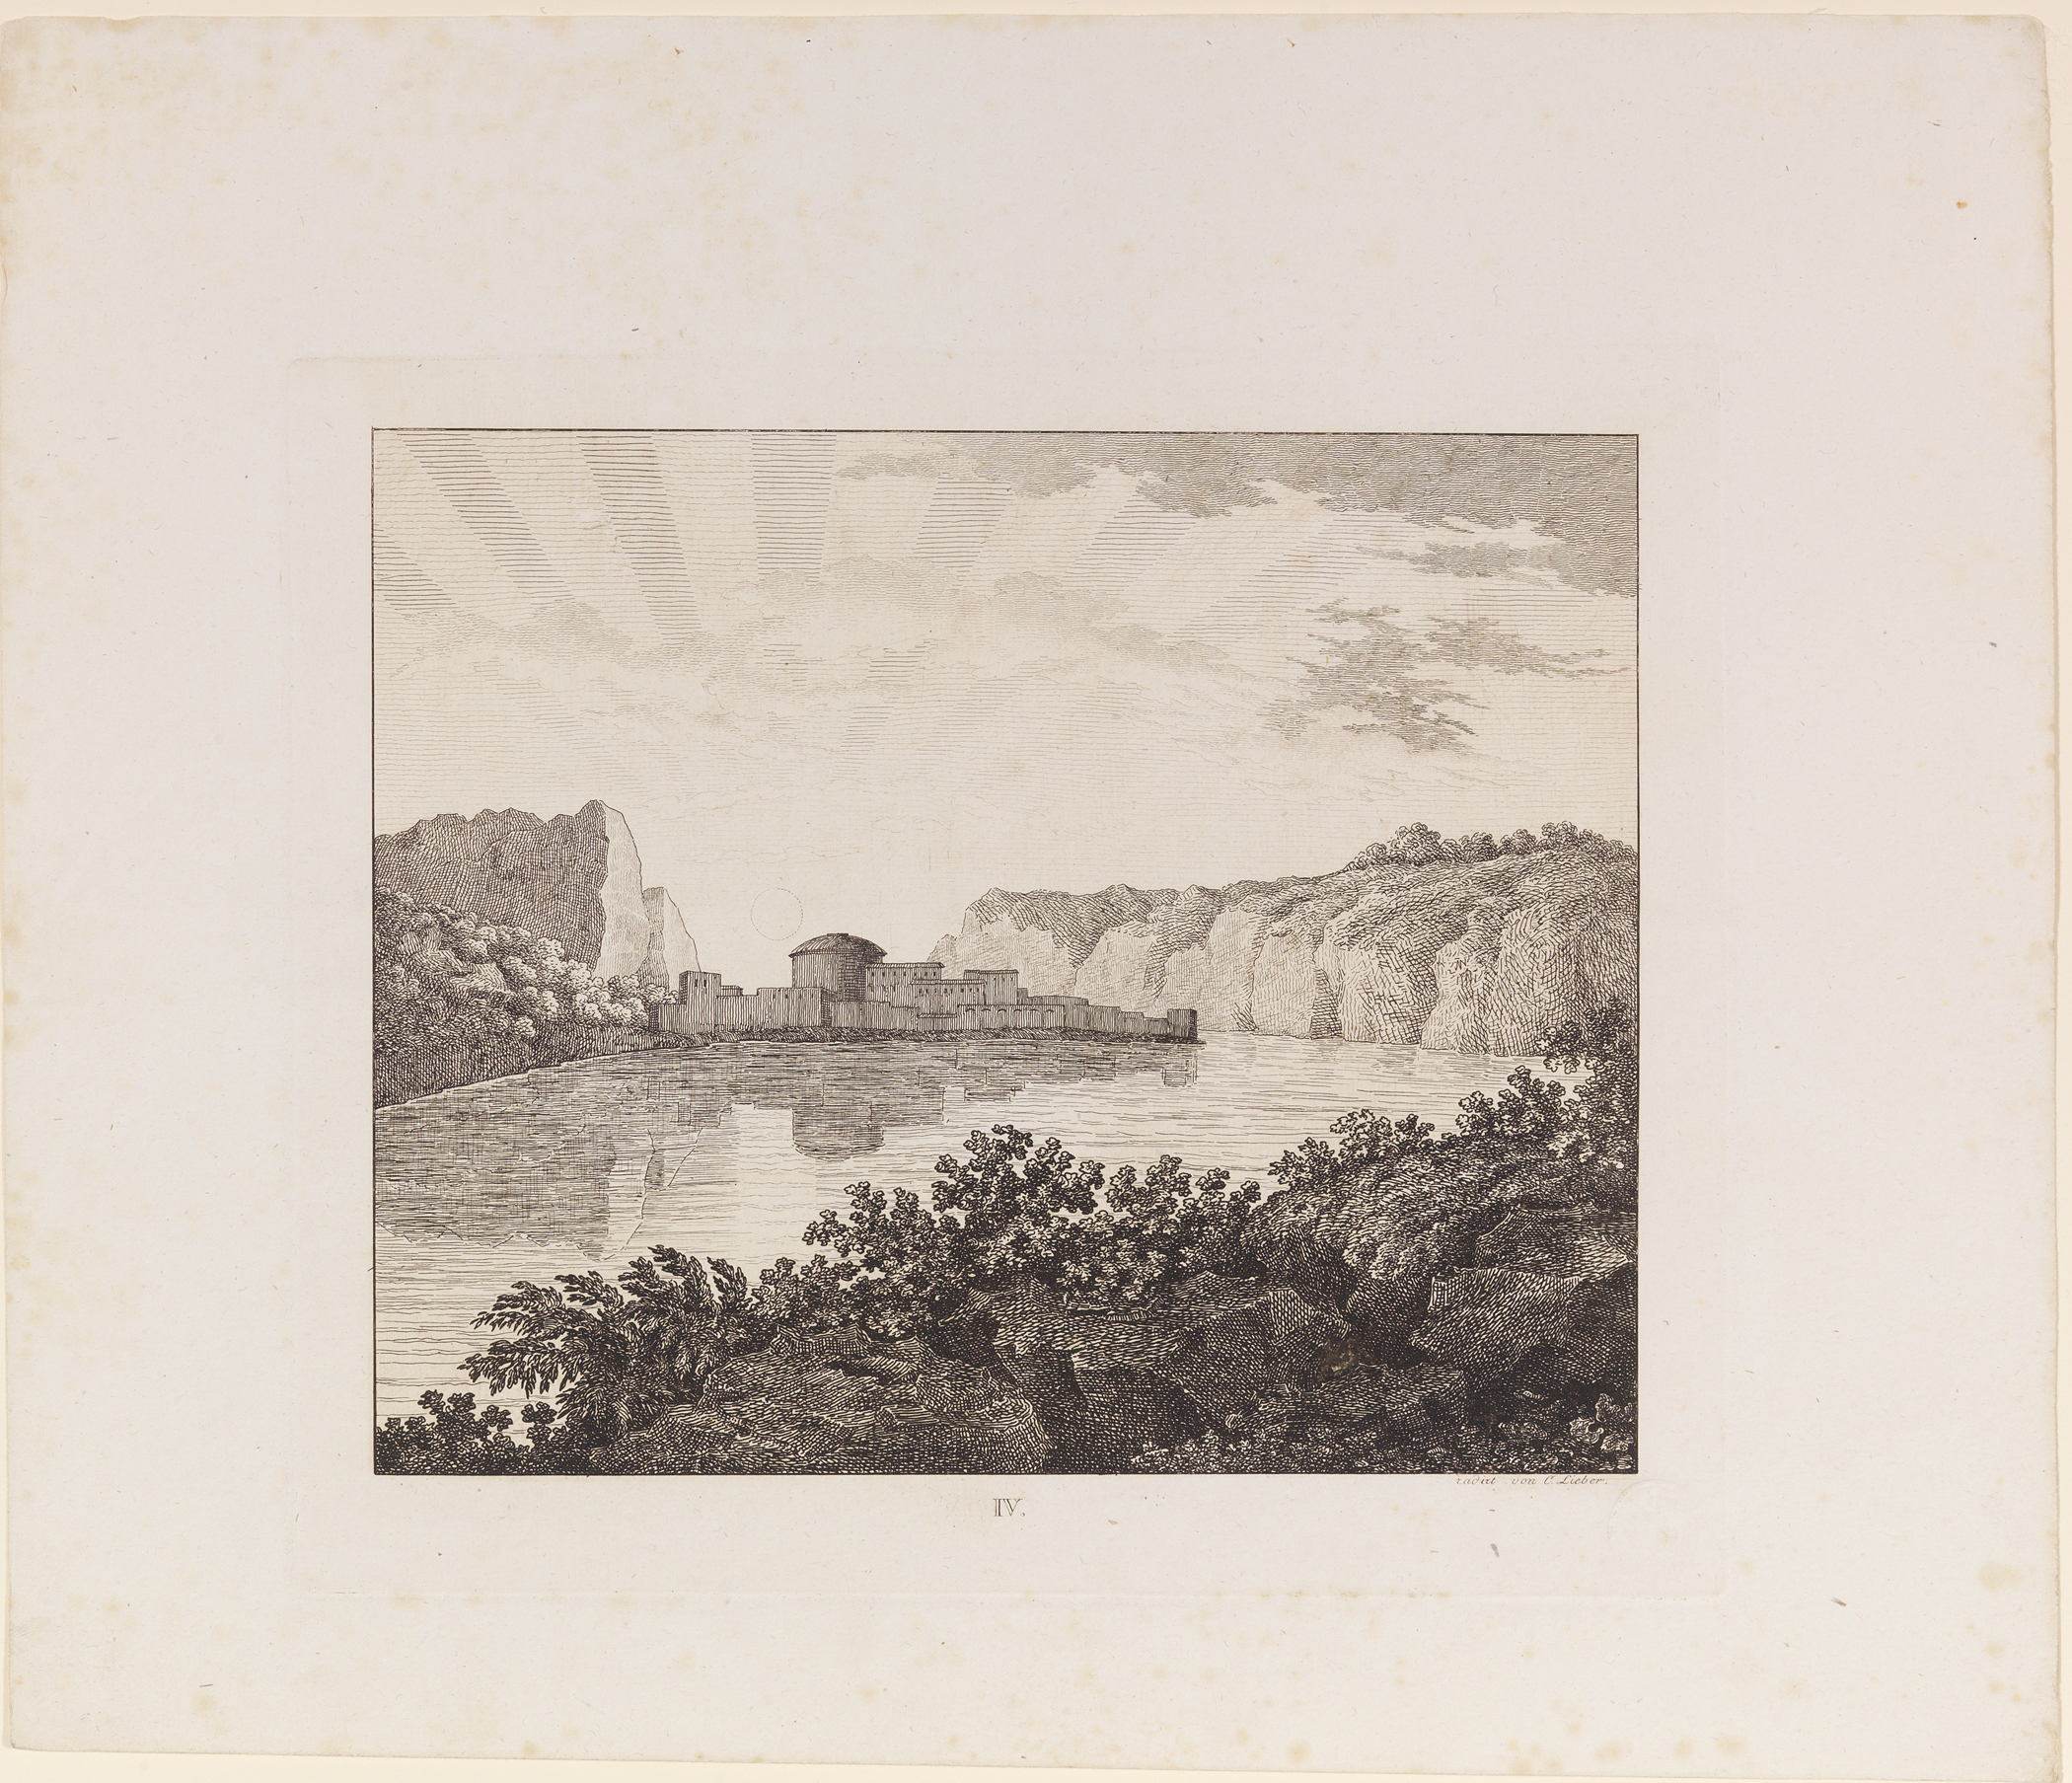 From Six Etchings after Drawings by Goethe, Goethe, Holdermannand, Lieber, 1821